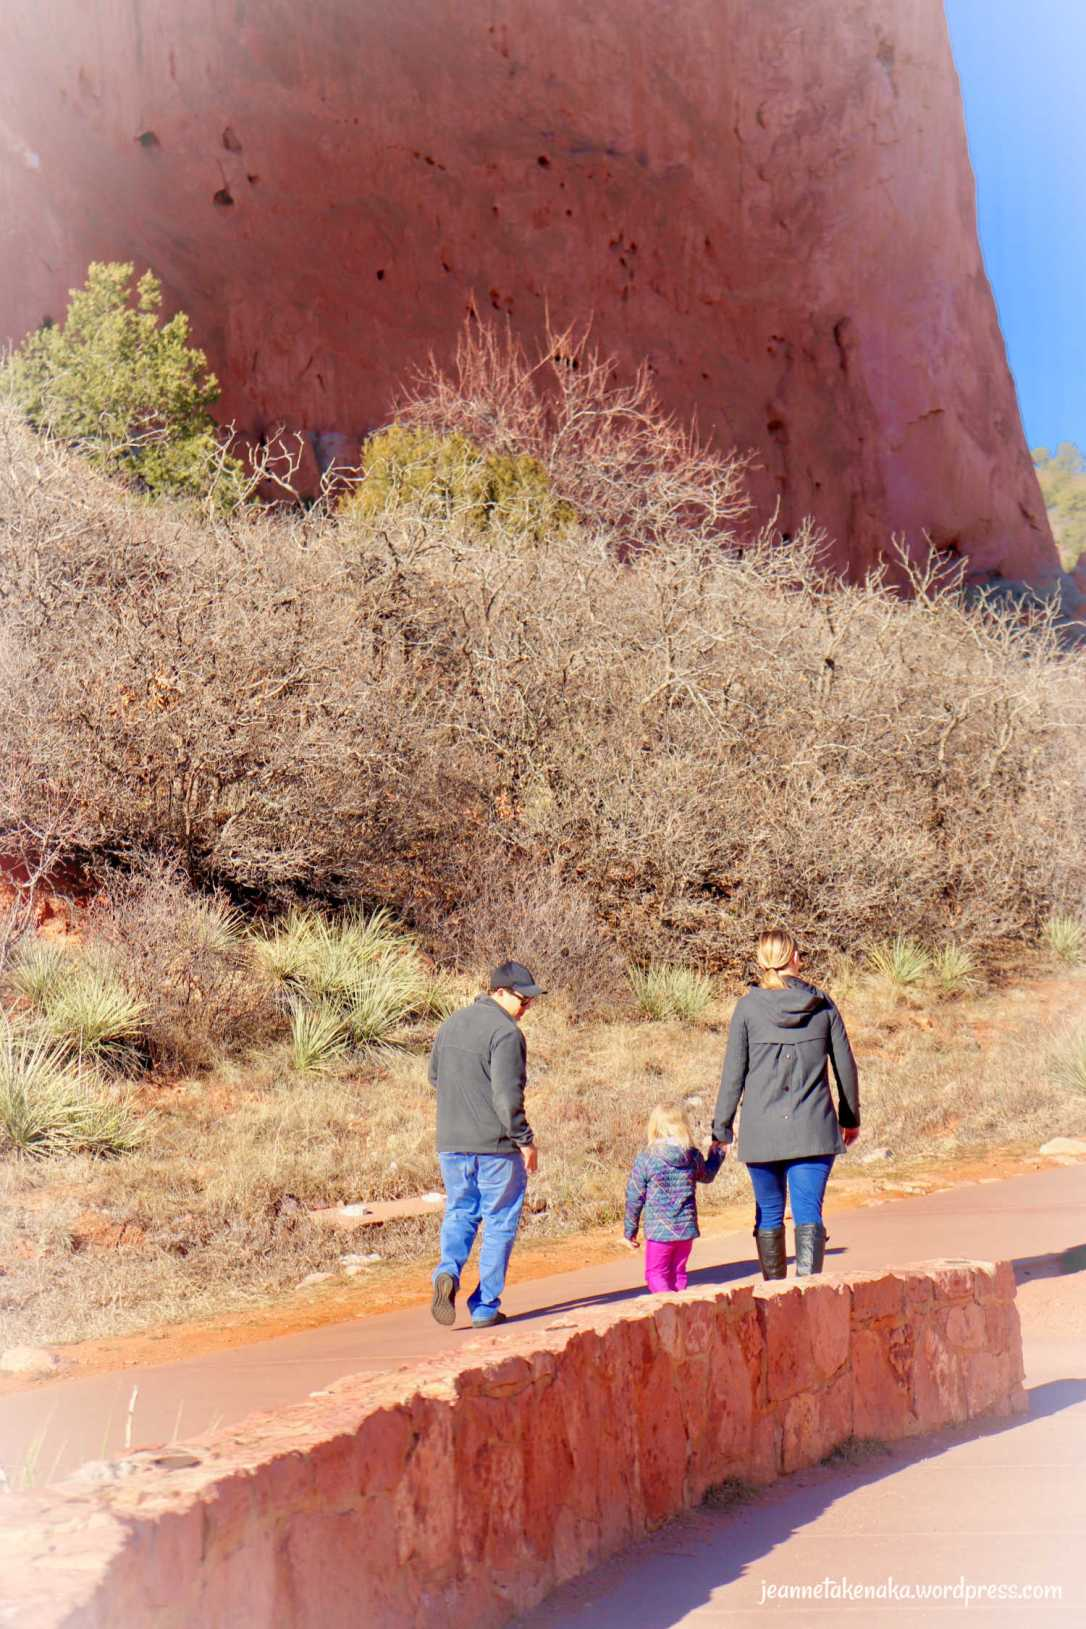 A man and a woman walking with a small child, the woman holding the child's hands